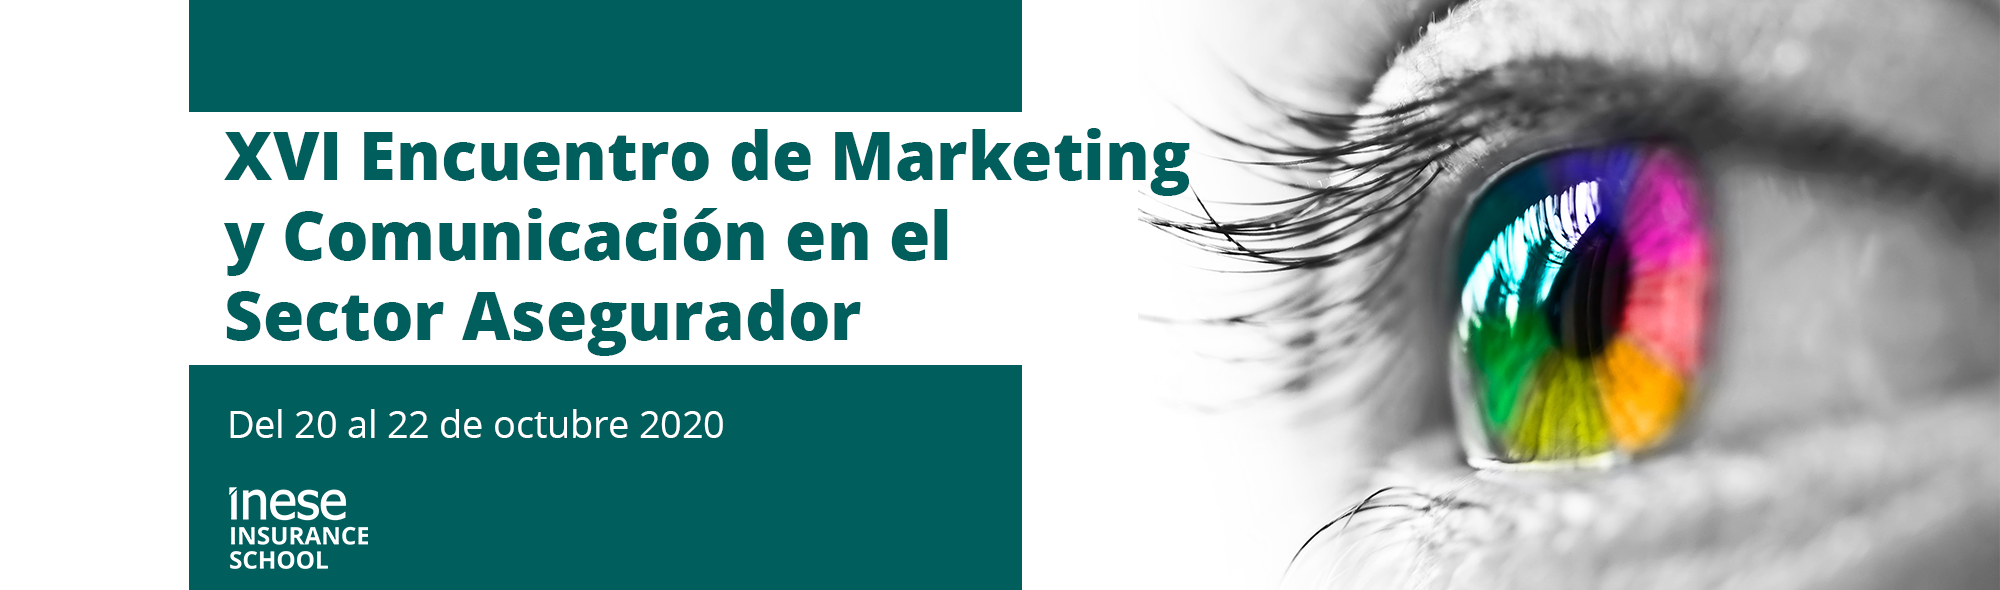 Encuentro de Marketing en el sector asegurador